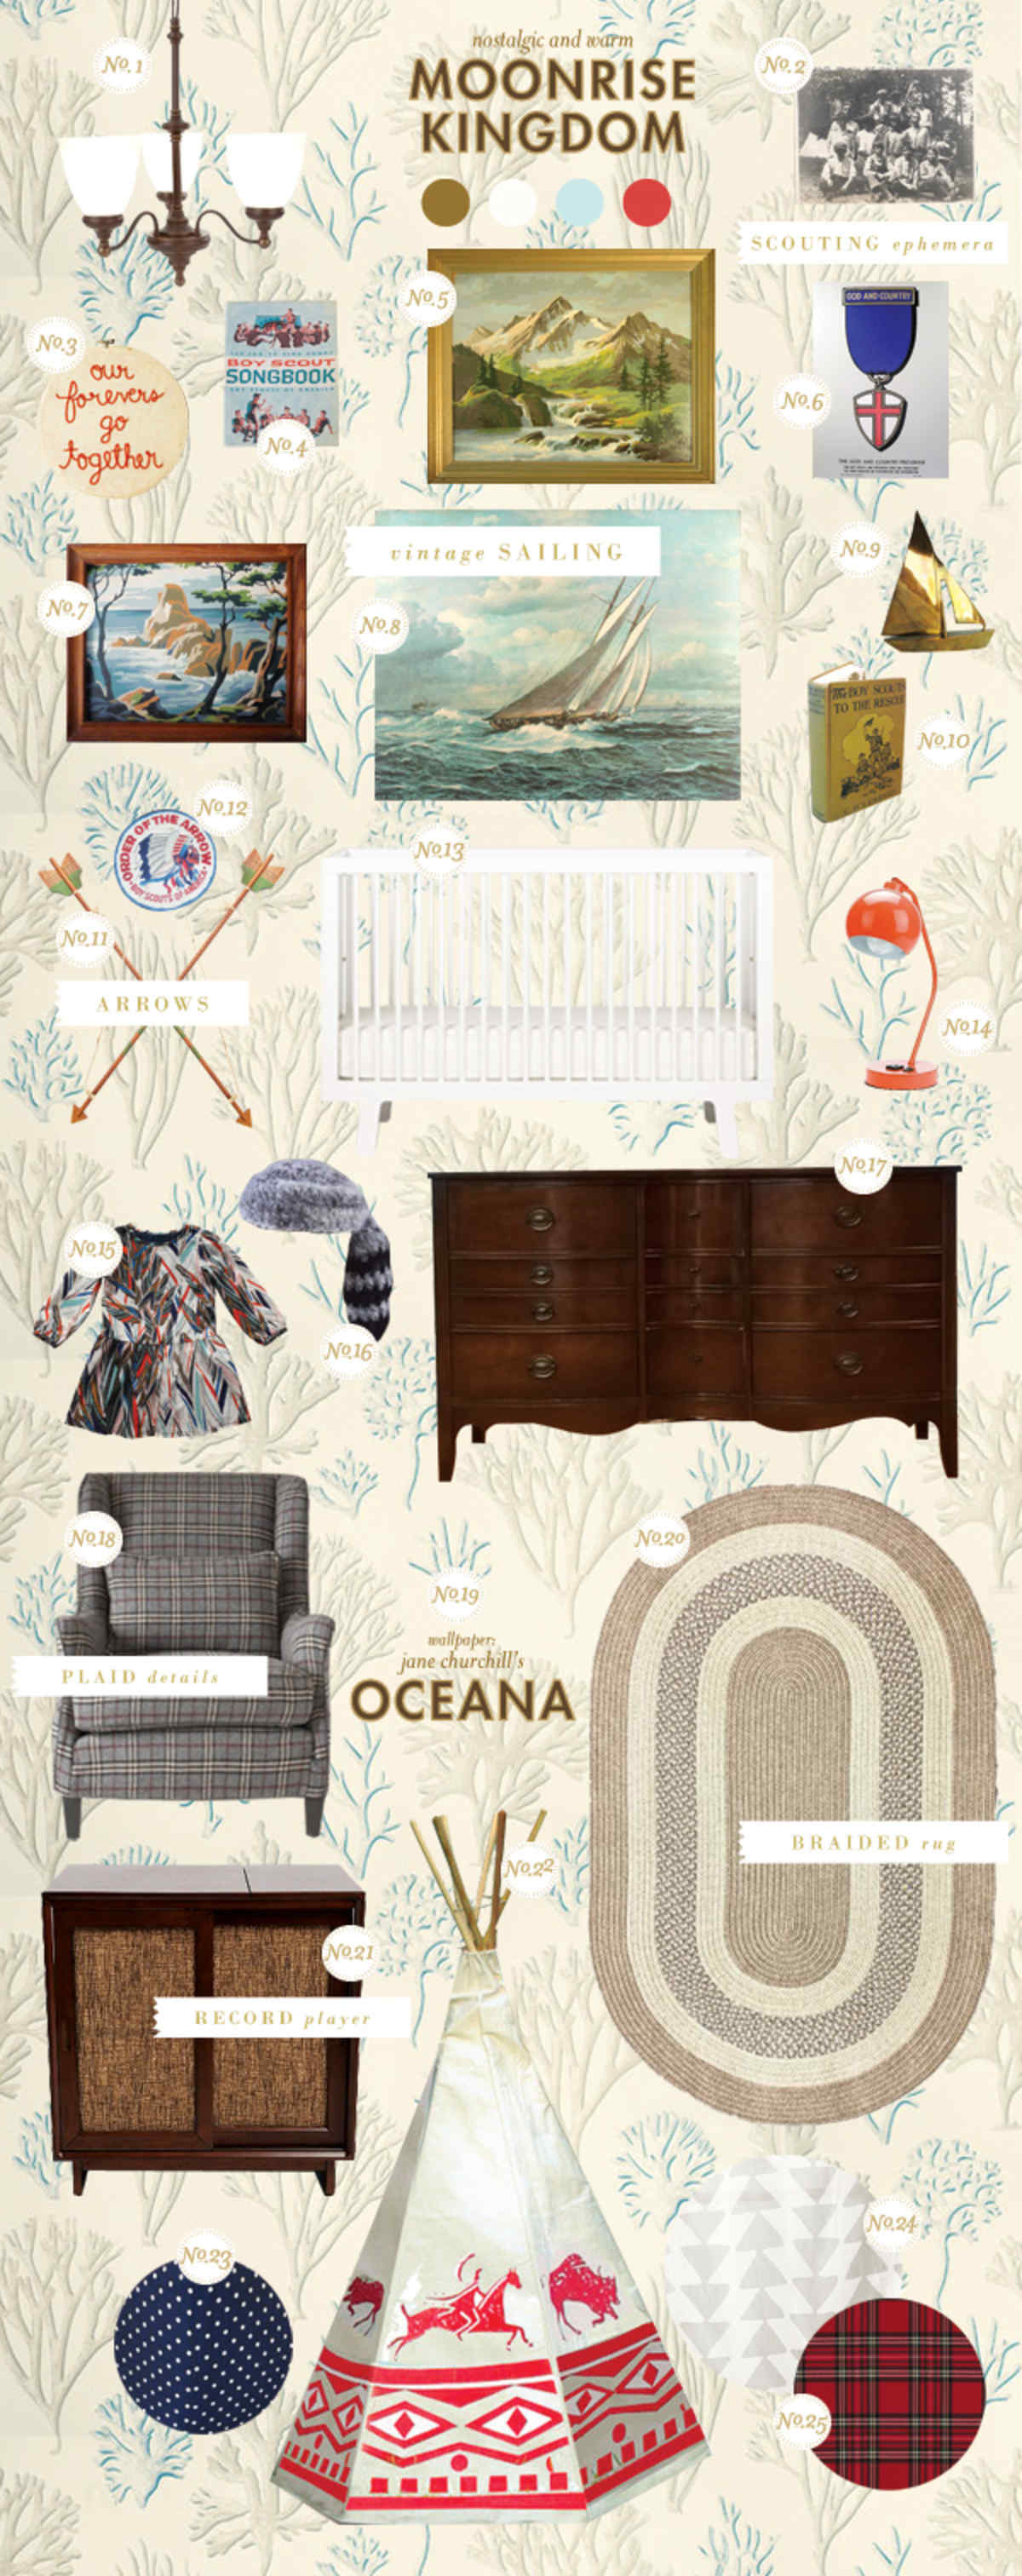 moonrise kingdom baby nursery inspiration board